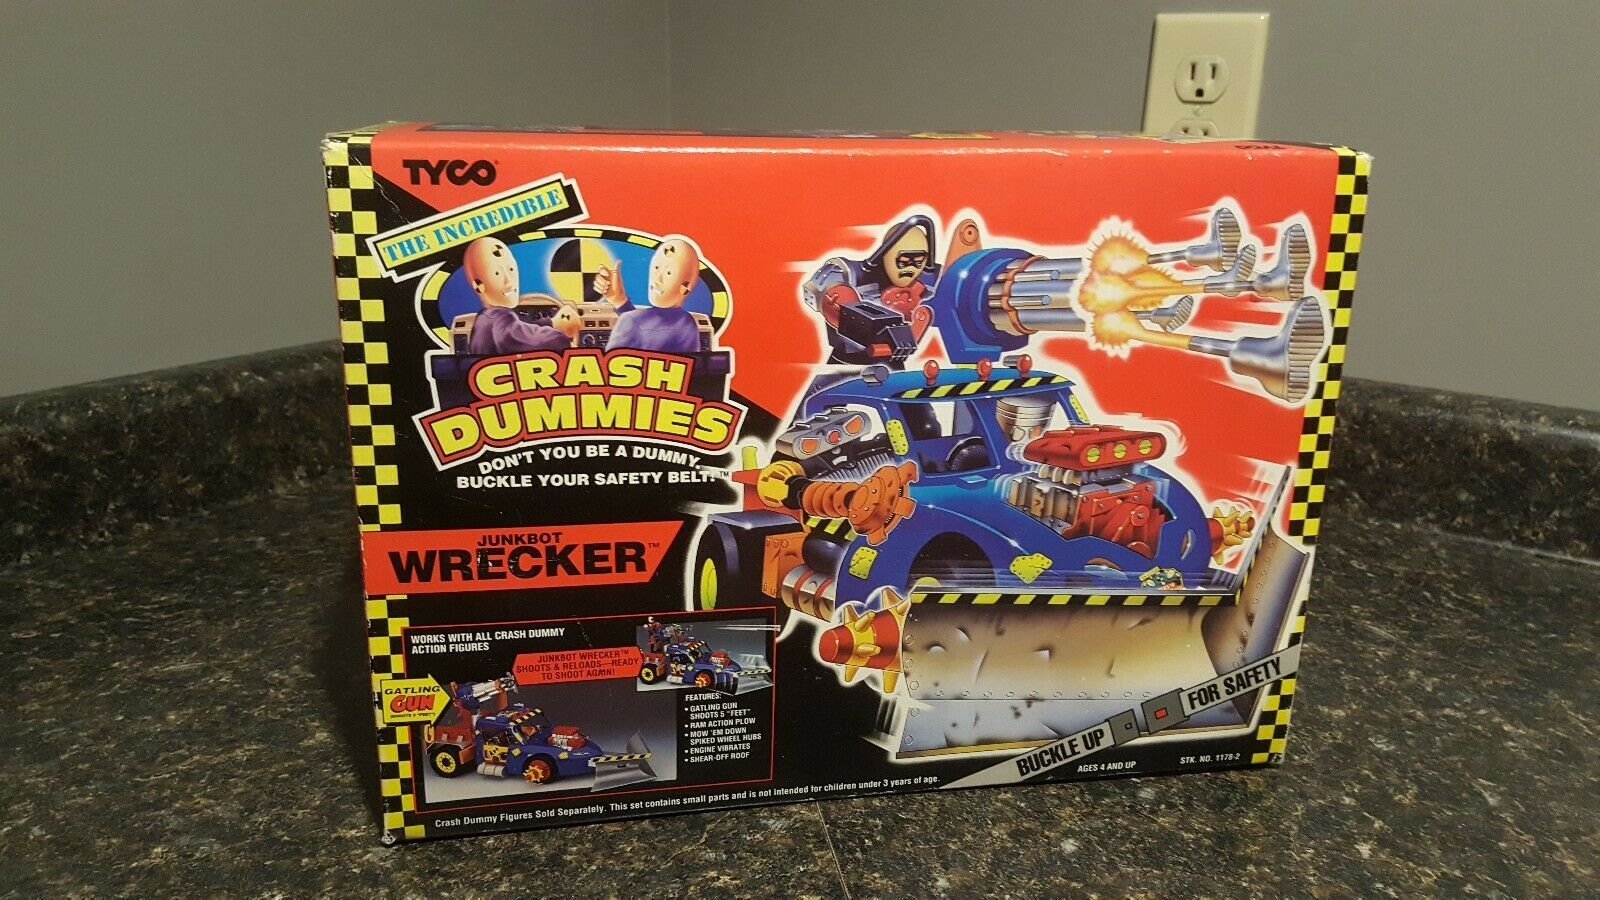 Crash Dummies Junkbot Wrecker MISB 1992 Tyco factory sealed super rare nice